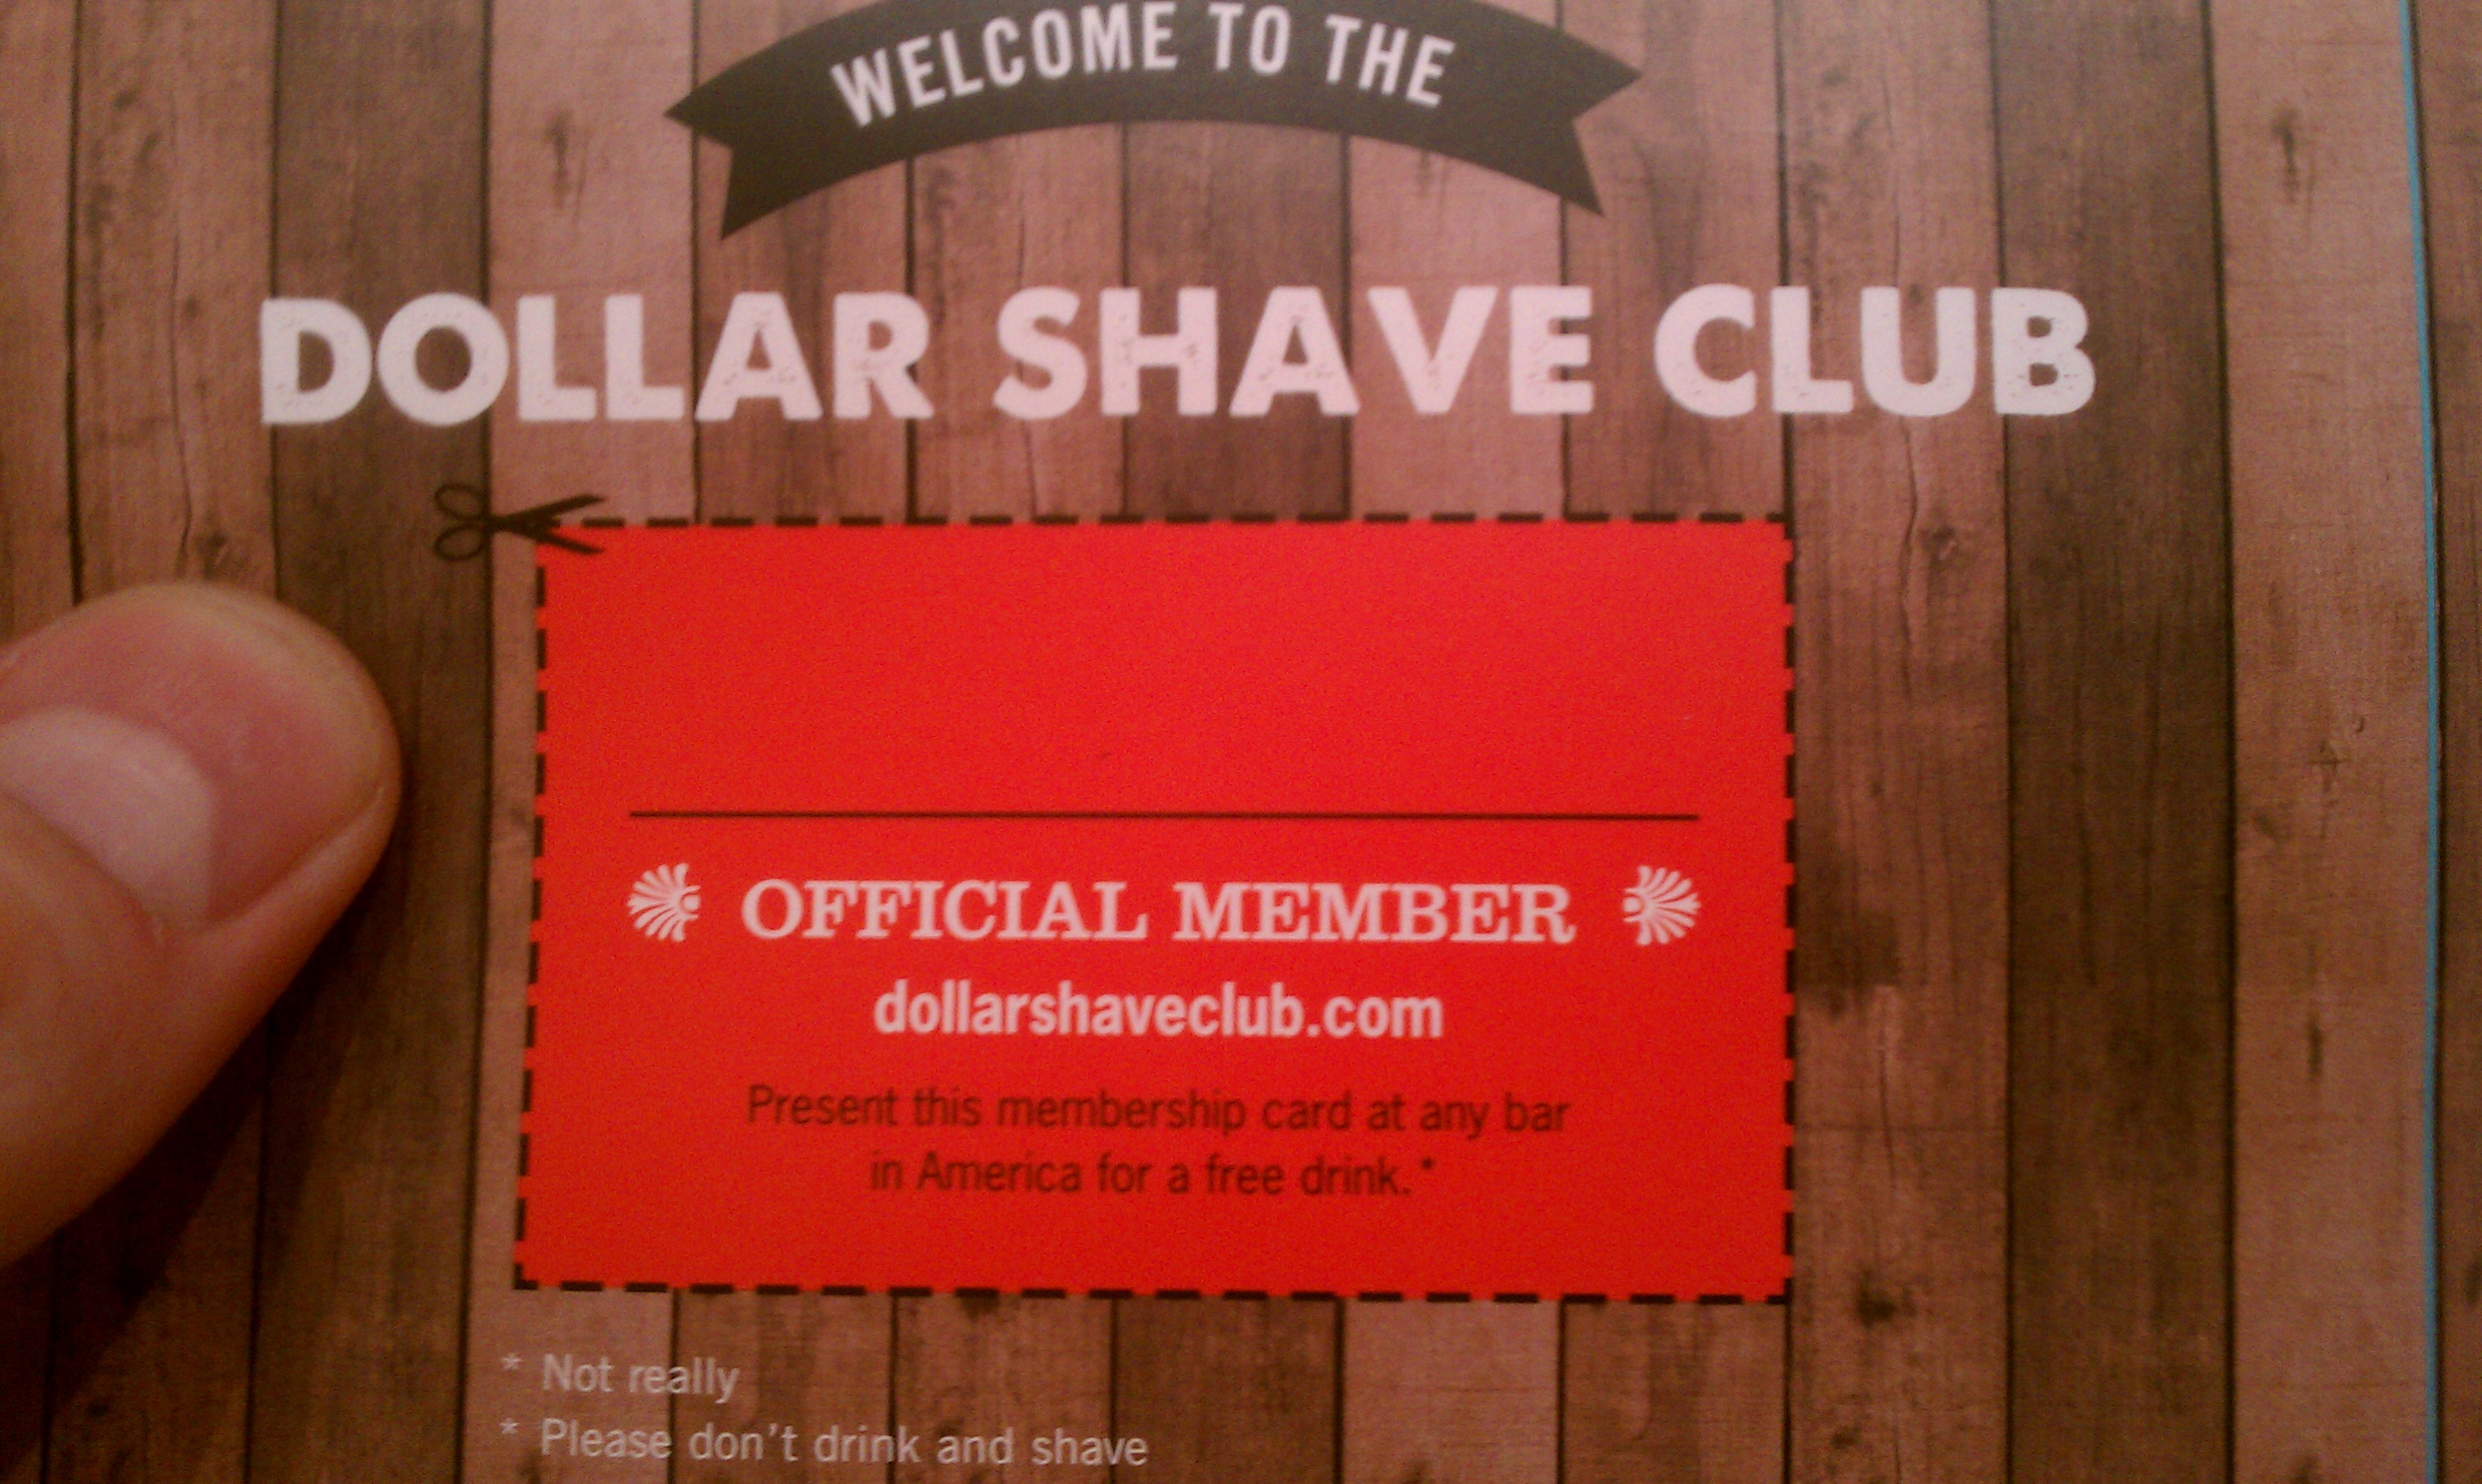 HOLY SHIT THAT'S AWESOME! A review of Dollar Shave Club